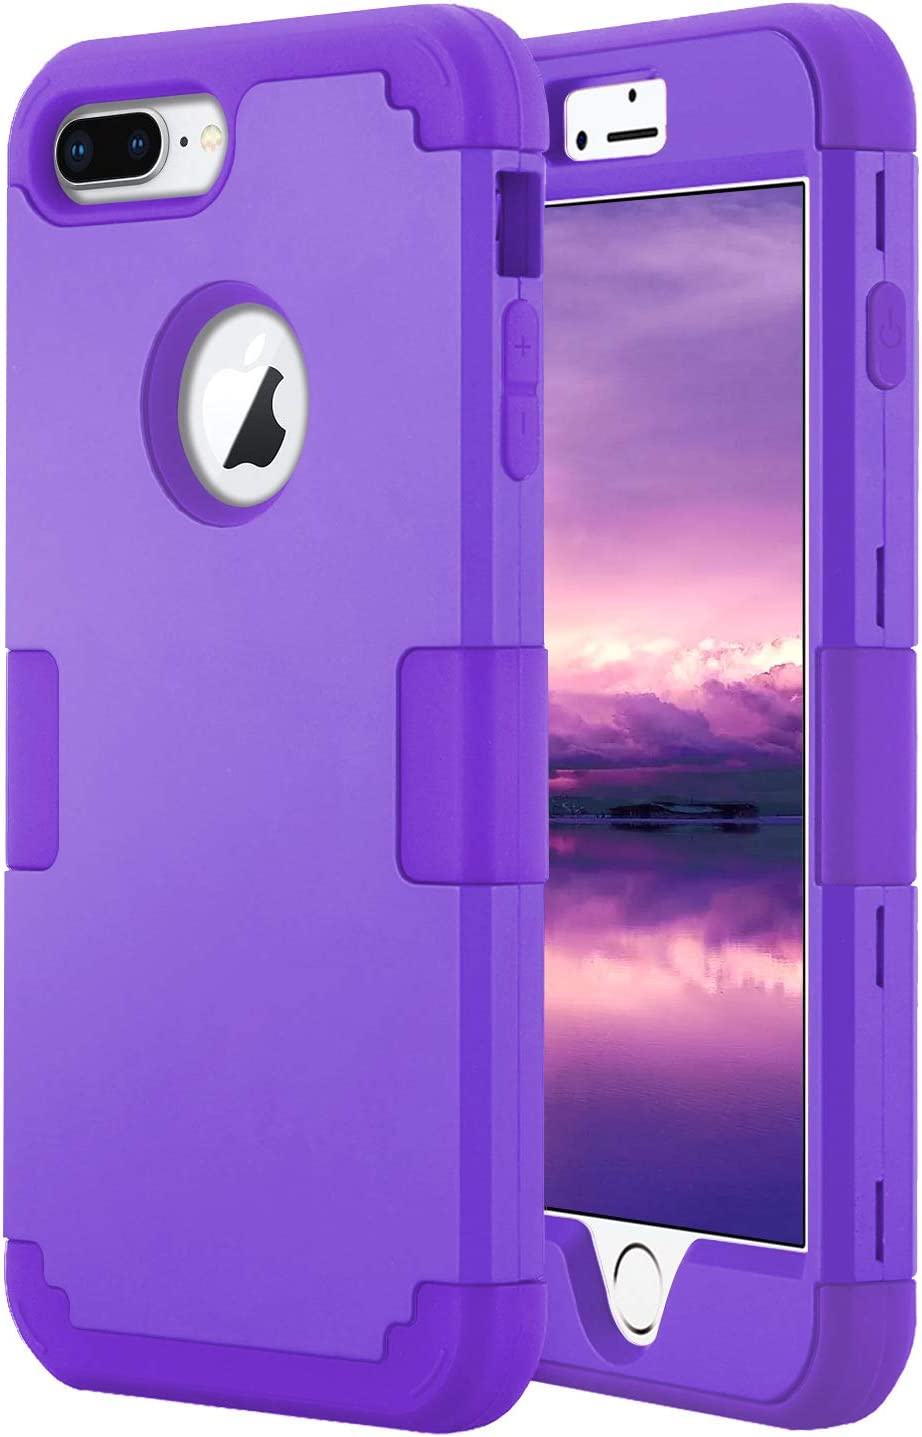 Petocase Compatible iPhone 8 Plus Case, Heavy Duty Slim Shockproof Drop Protection 3 in 1 Hybrid Hard PC Covers Soft Rubber Bumper Protective Case for iPhone 8 Plus / 7 Plus - Purple